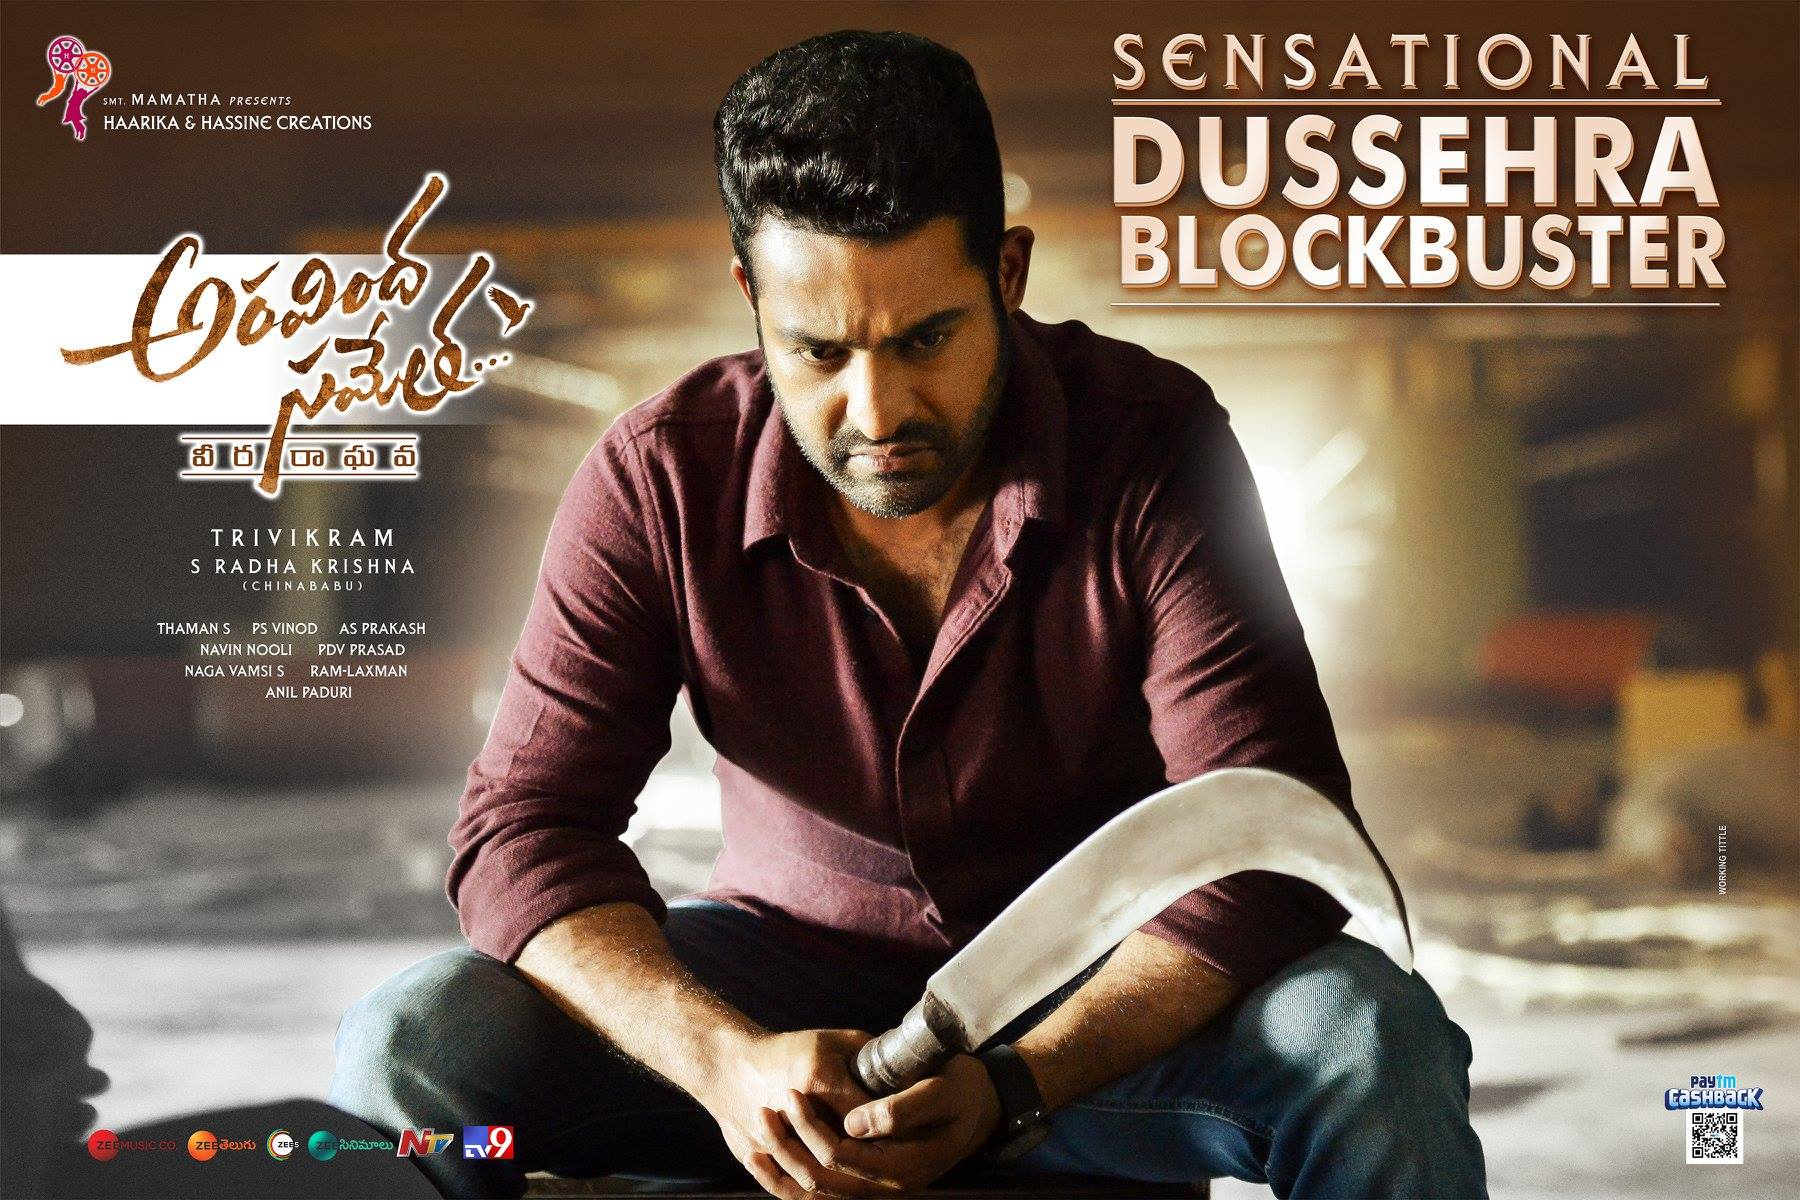 Jr NTR Aravindha Sametha Sensational Dussehra Blockbuster Wallpapers HD